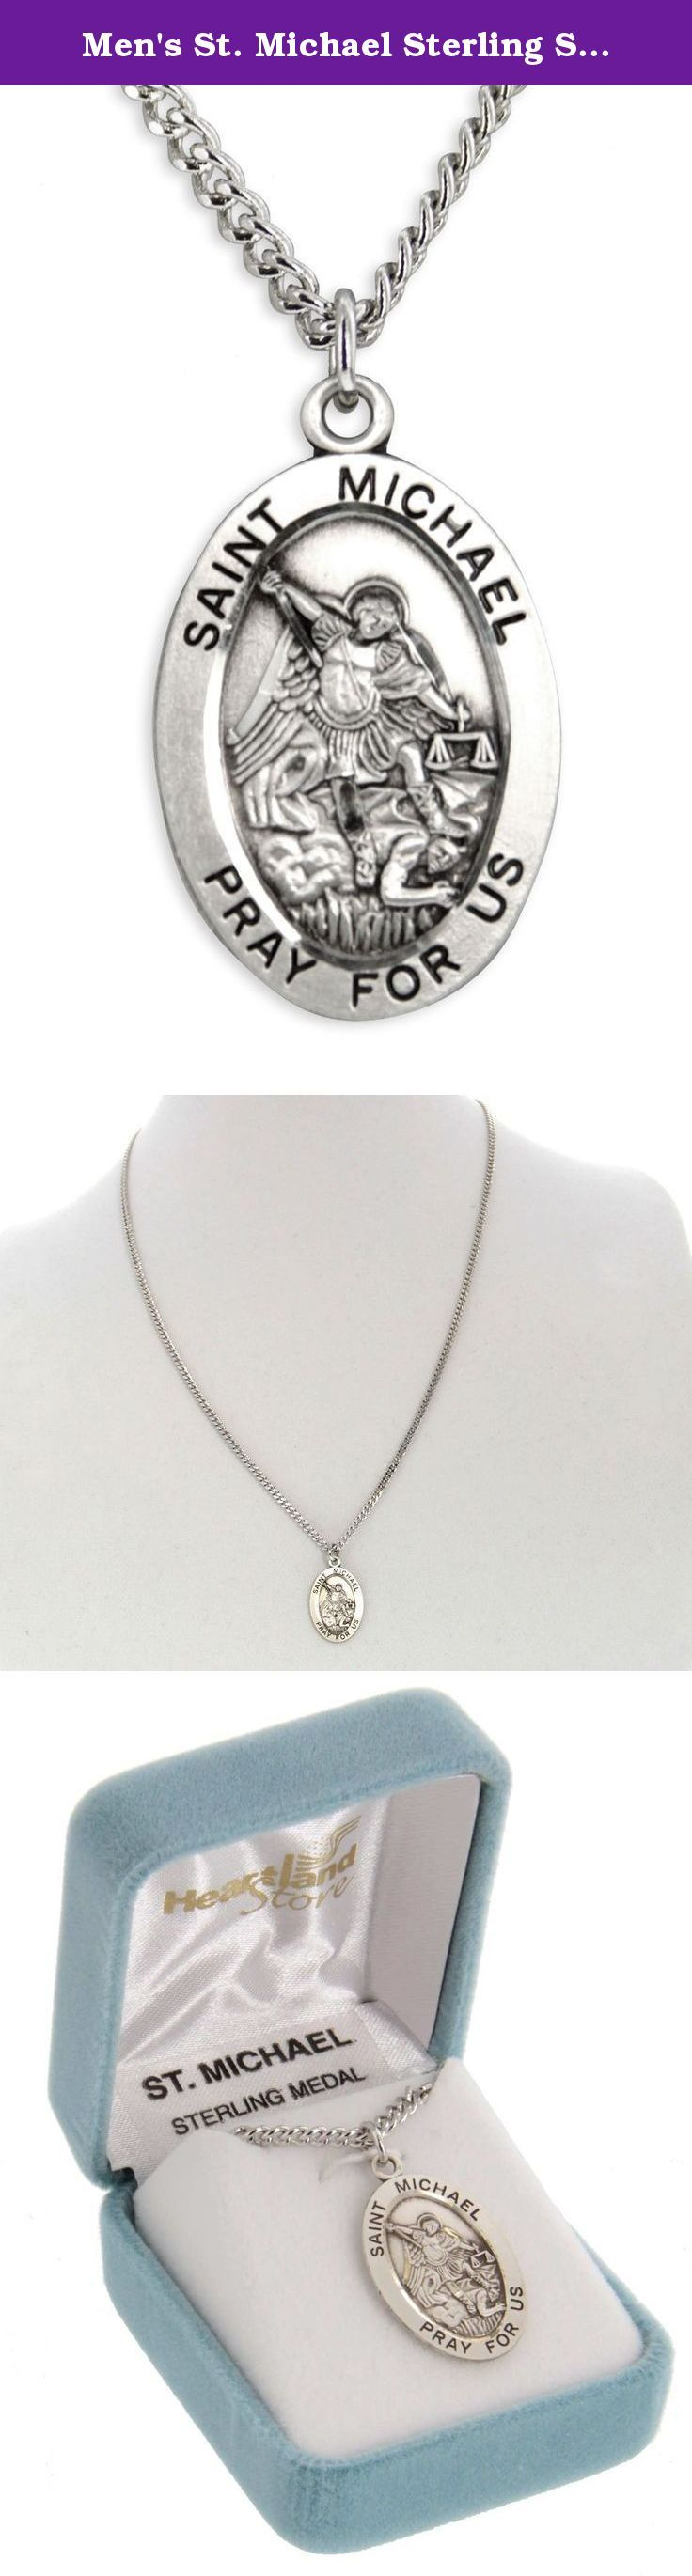 Men's St. Michael Sterling Silver Oval Pendant + 24 Inch Rhodium Plate Chain with Clasp. St. Michael is heaven's protector and yours too. This is the perfect pendant for anyone who wants his protection and help. Great gift idea for anyone in the police service or as a confirmation gift. The oval pendant is made of genuine .925 sterling silver and proudly made in the USA. The text around the oval outside border reads Saint Michael Pray For Us and the back is plain. You can choose from the...